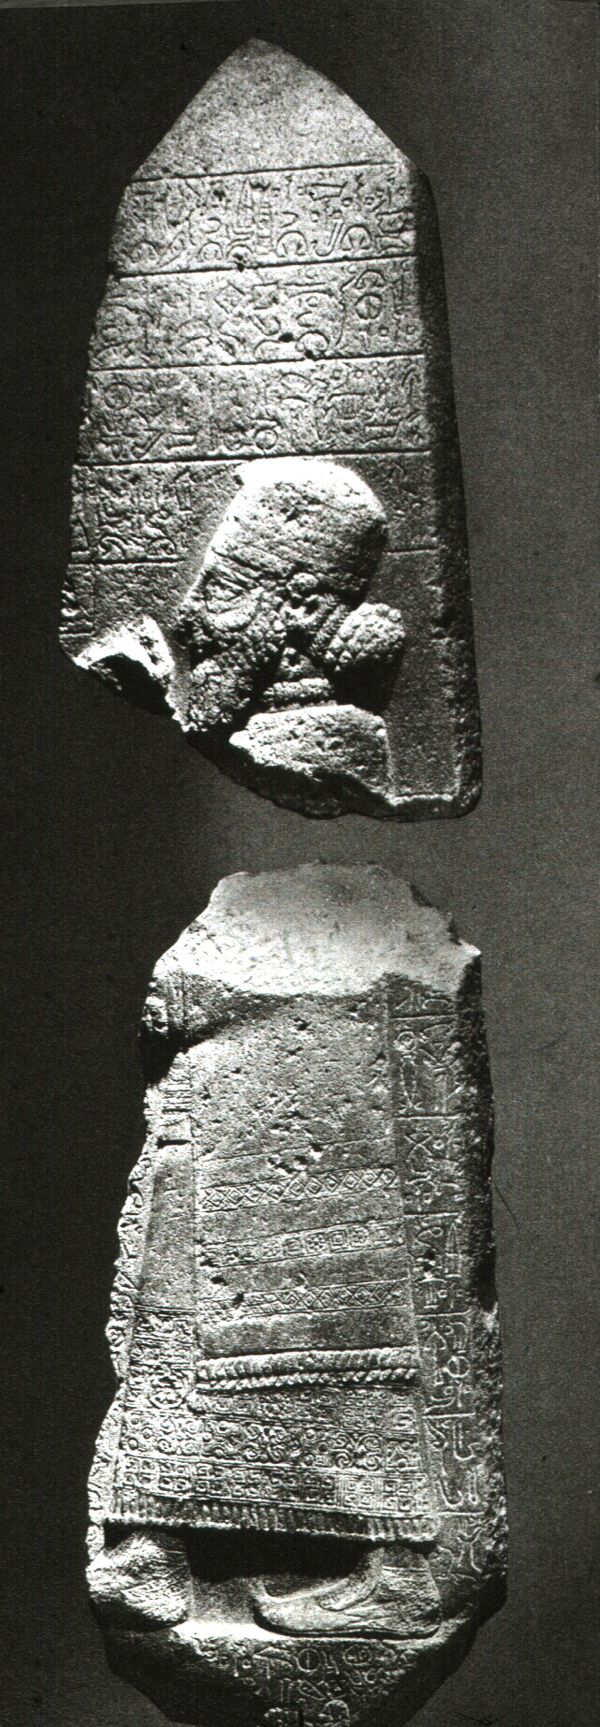 stele with Warpalawas found at Bor